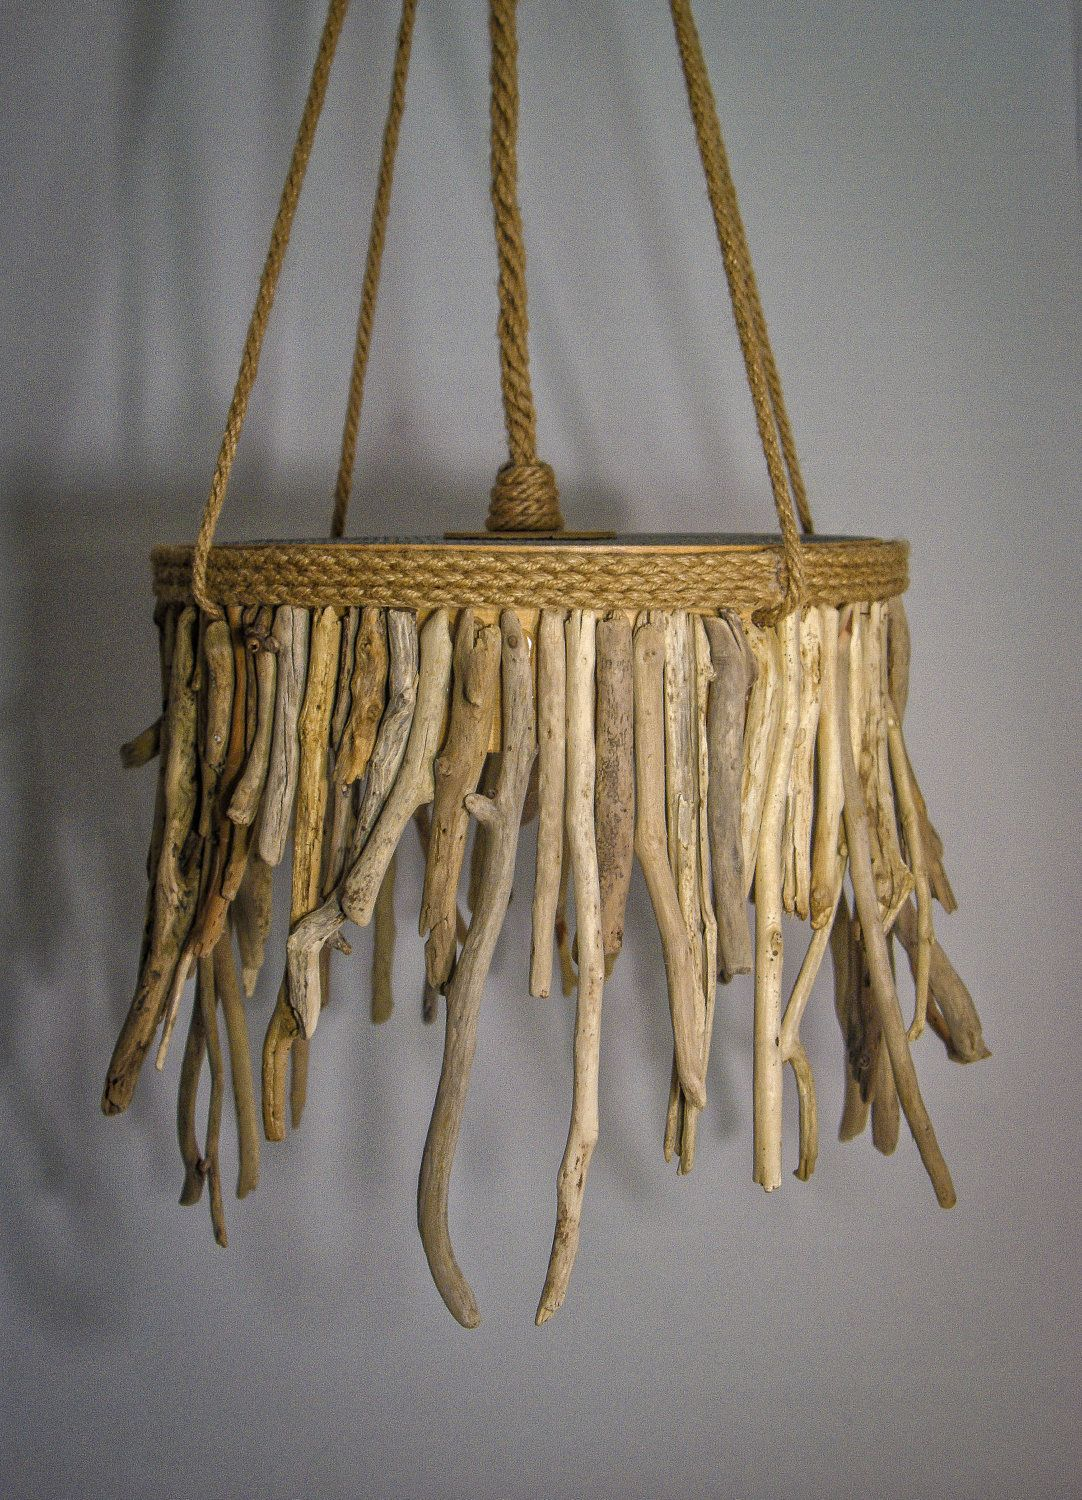 Driftwood Hanging Light Chandelier Coastal Chic Lamp Rope